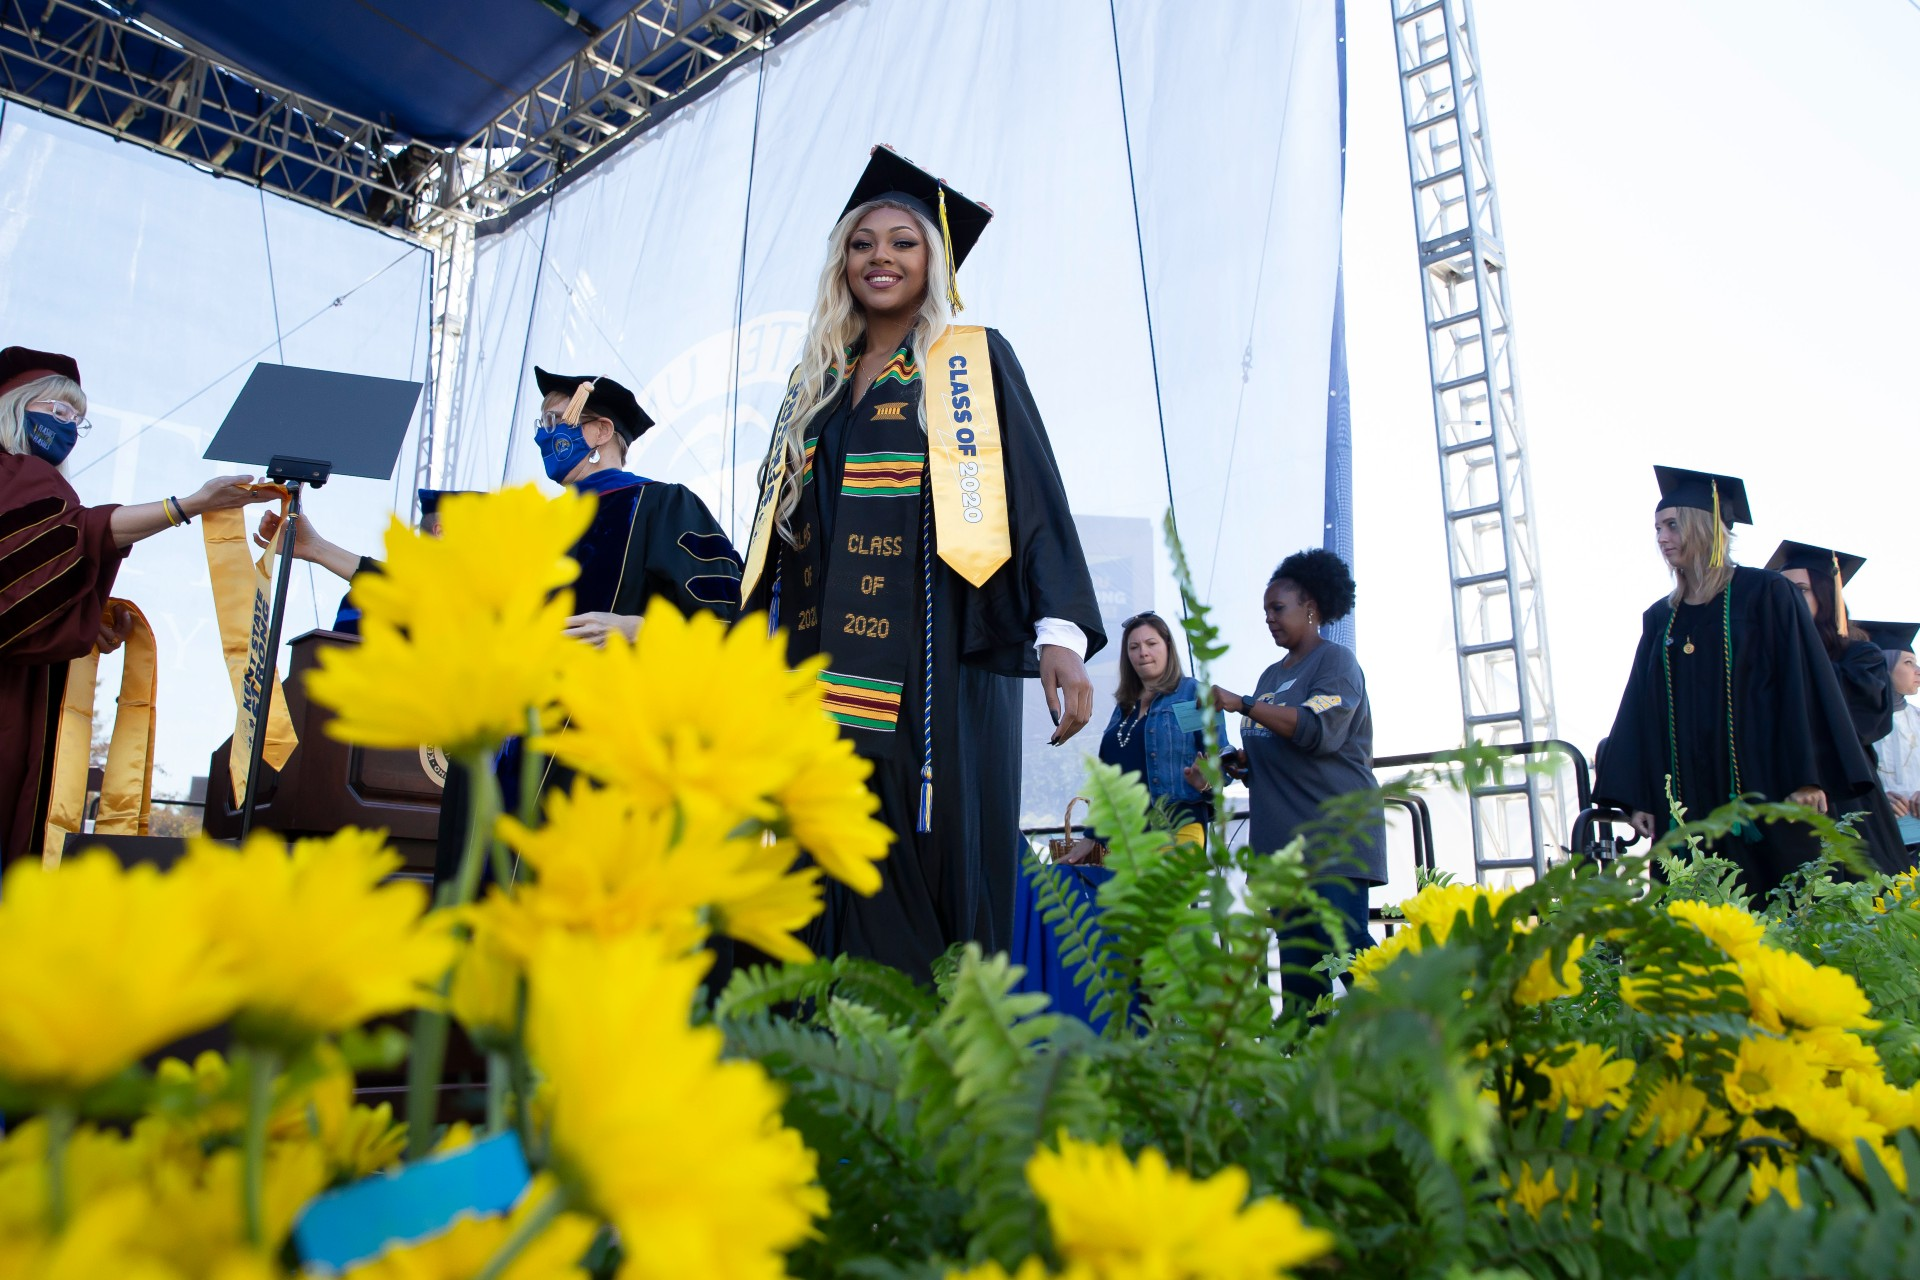 Class of 2020 graduate crosses the stage at the Commencement ceremony